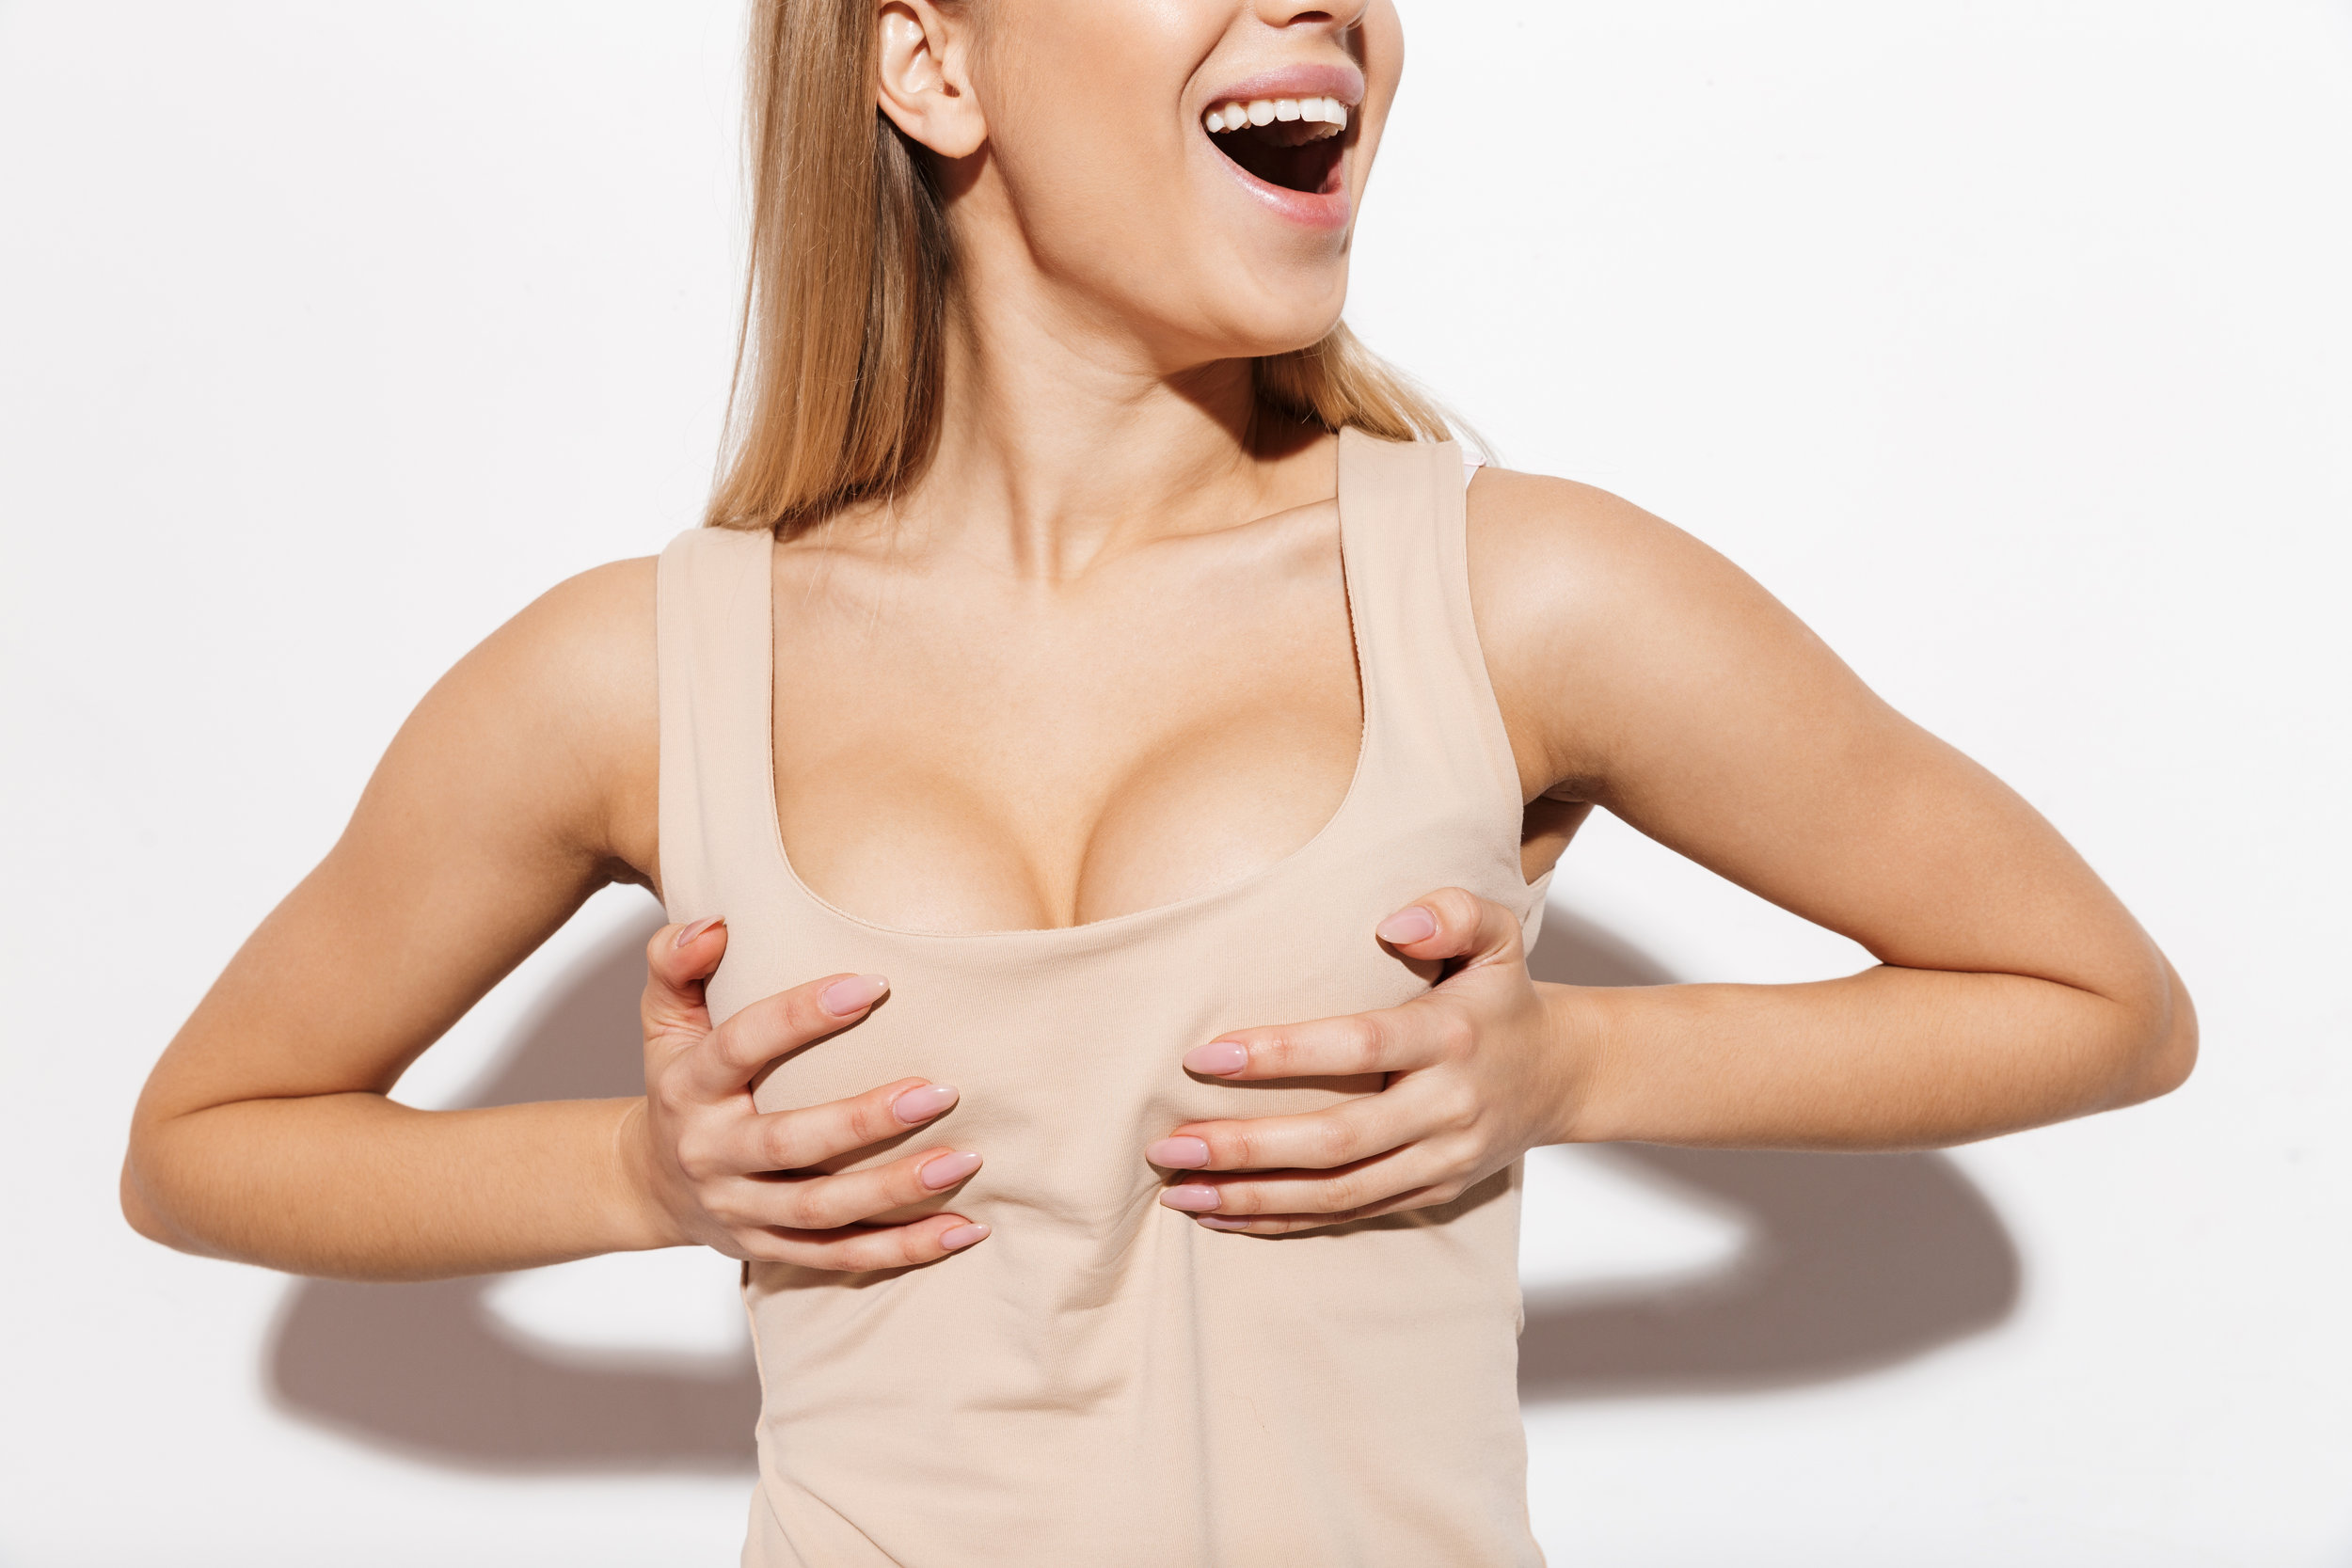 learn more - about breast augmentation